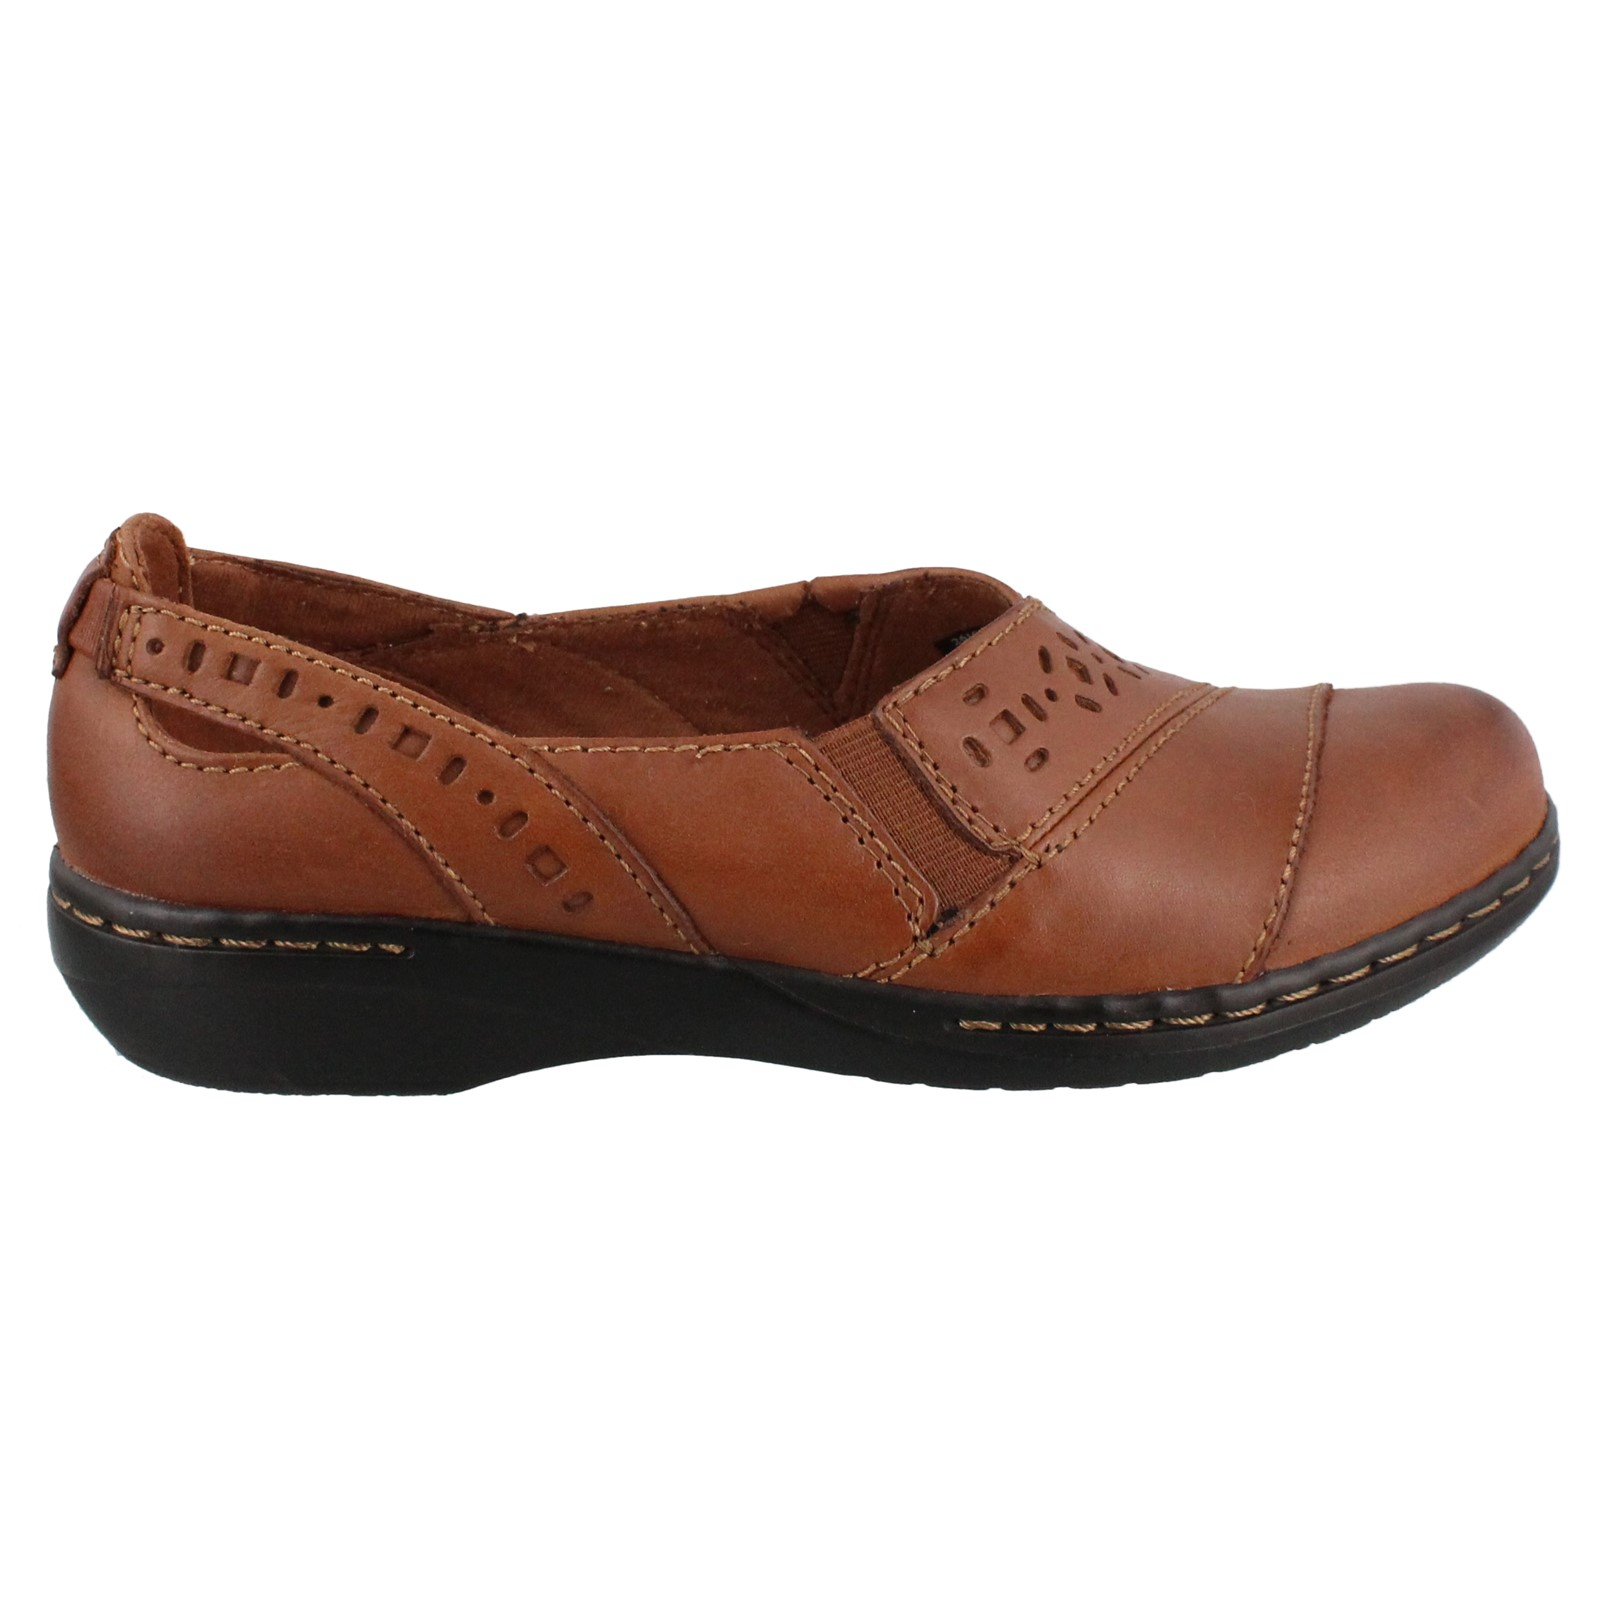 Women's Clarks, Evianna Fig4 Slip on Shoes These shoes let you transition from